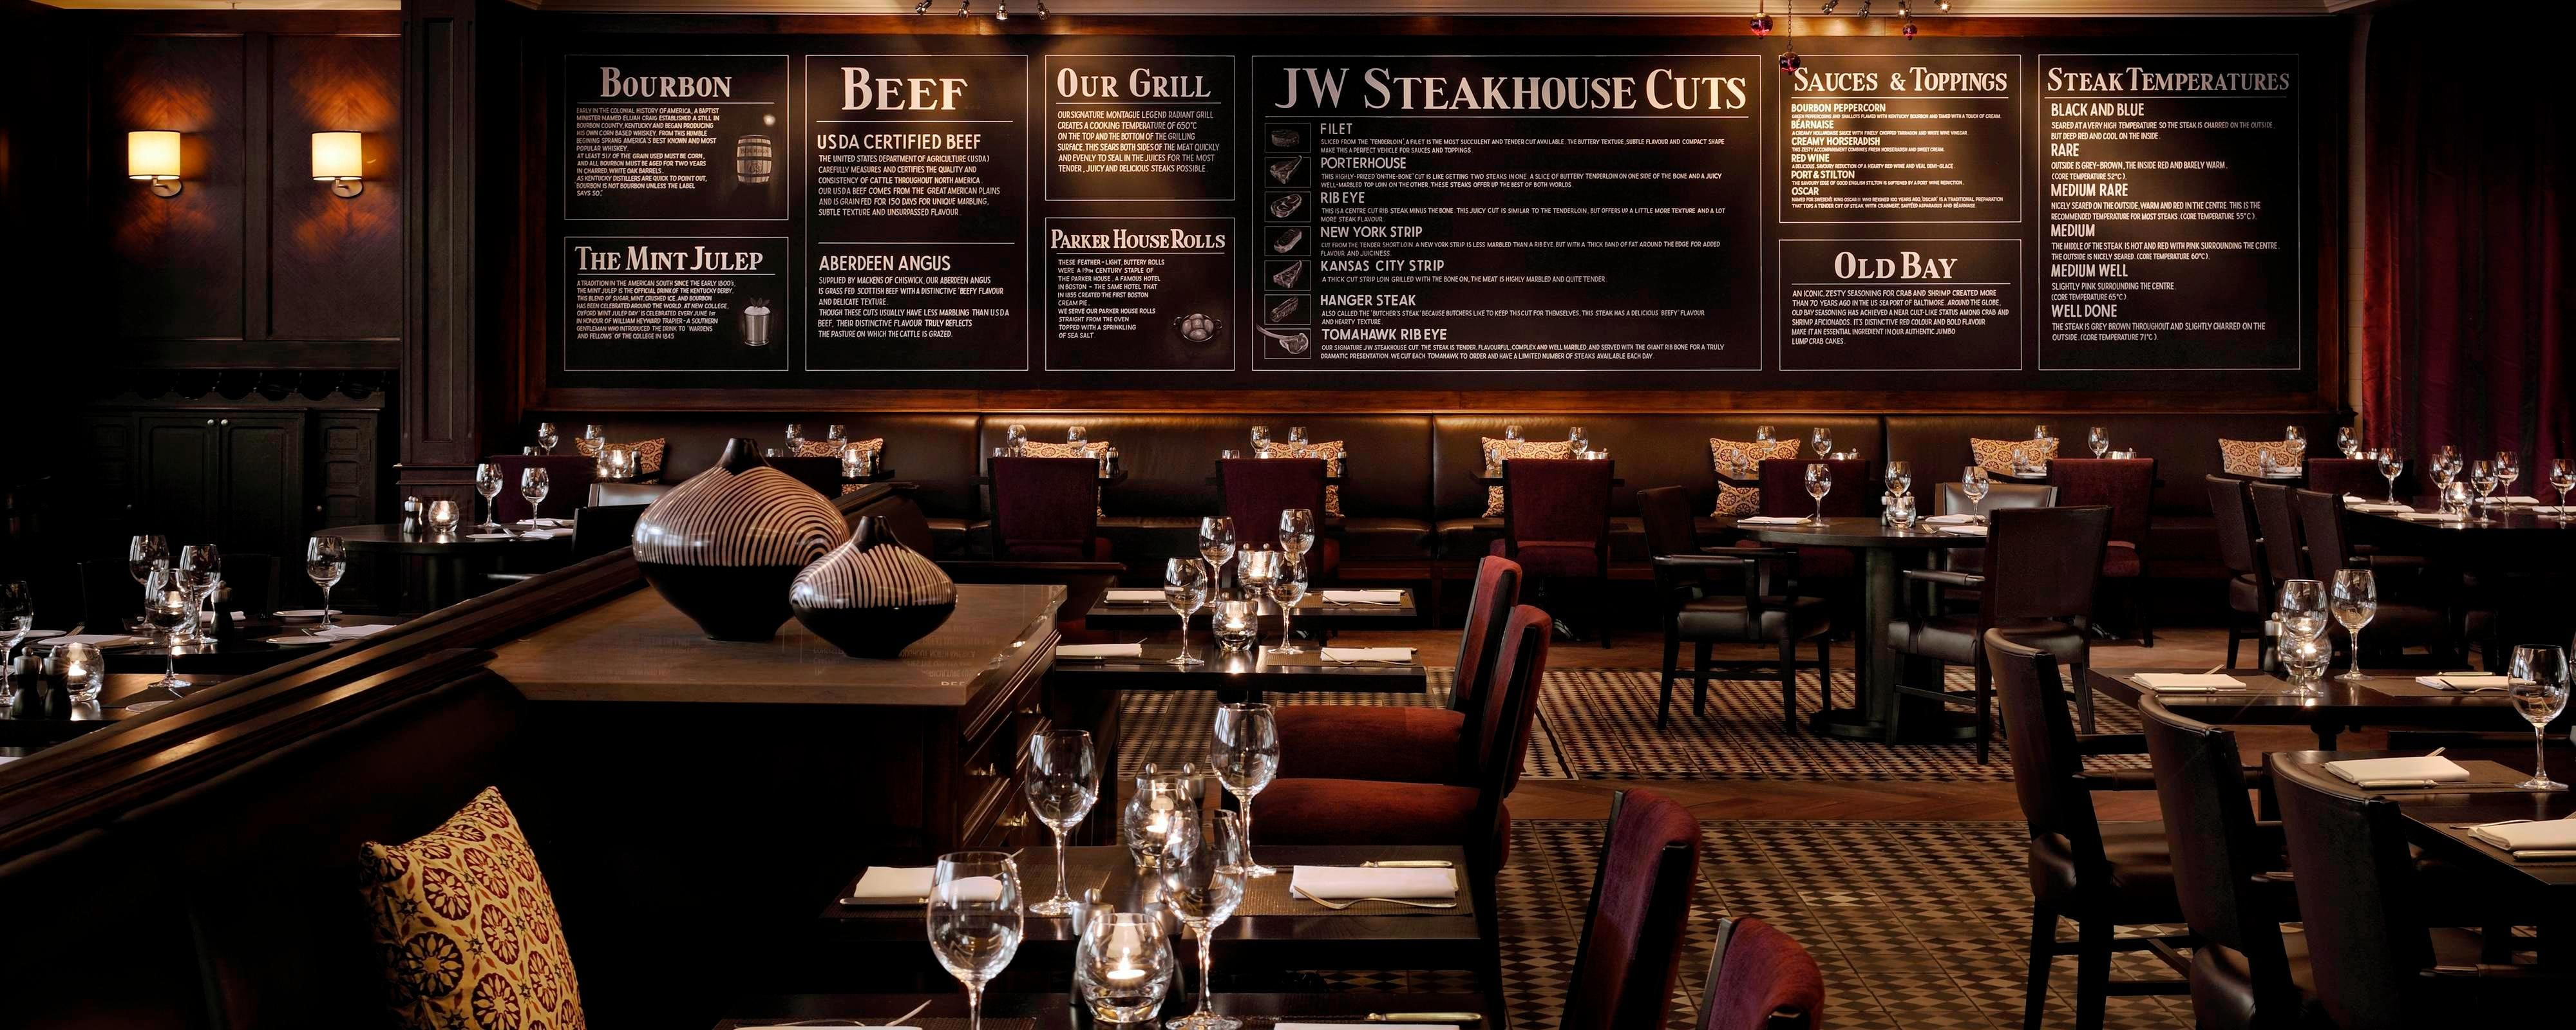 Steak Out Menu Pictures